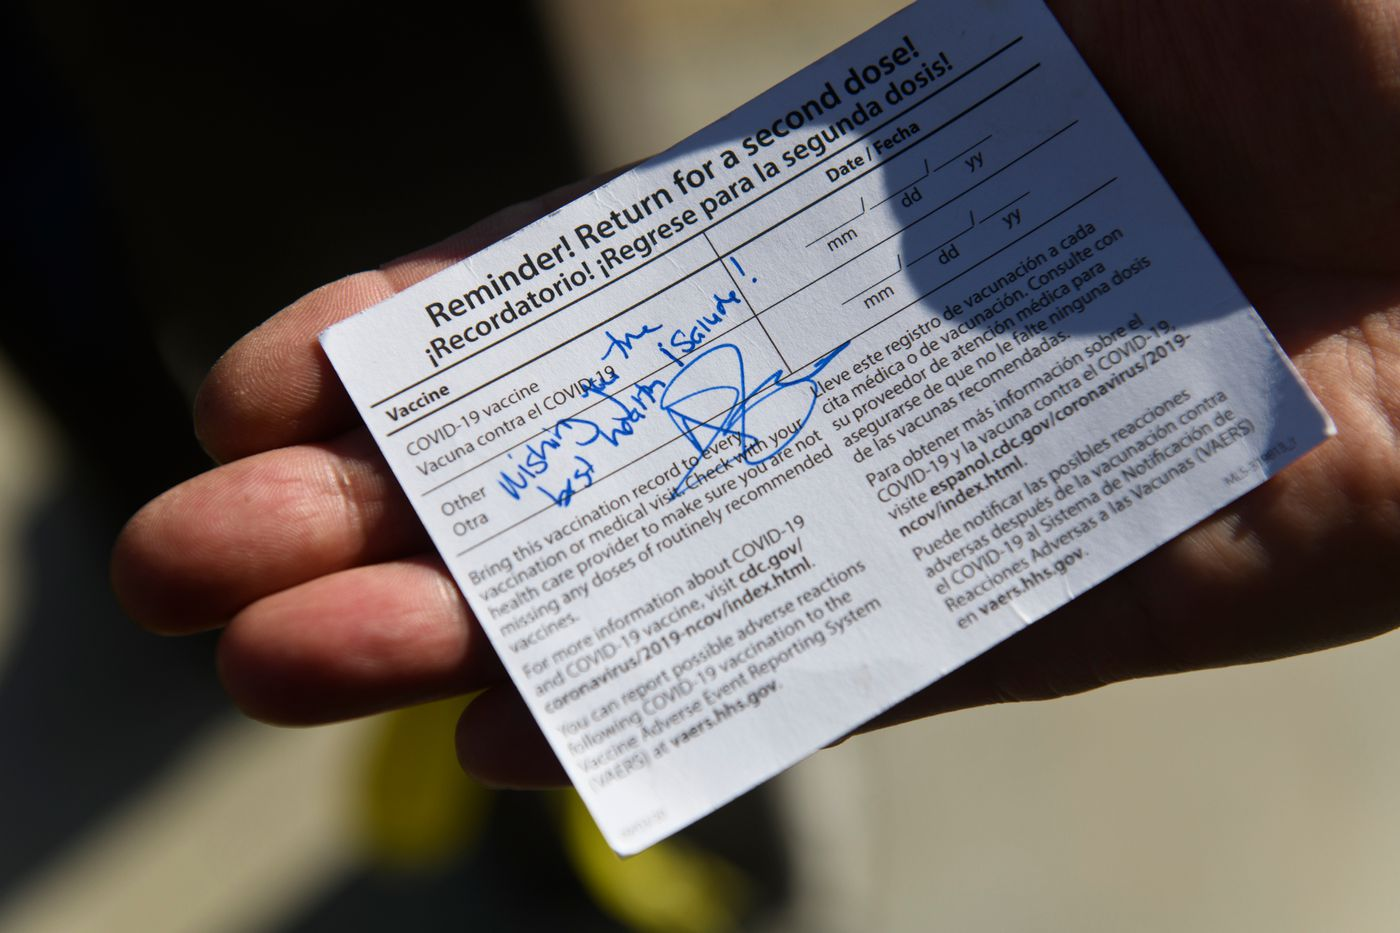 Trenton Yates, of Clam Gulch, got his COVID-19 vaccine card autographed by Anne Zink in Soldotna. (Marc Lester / ADN)